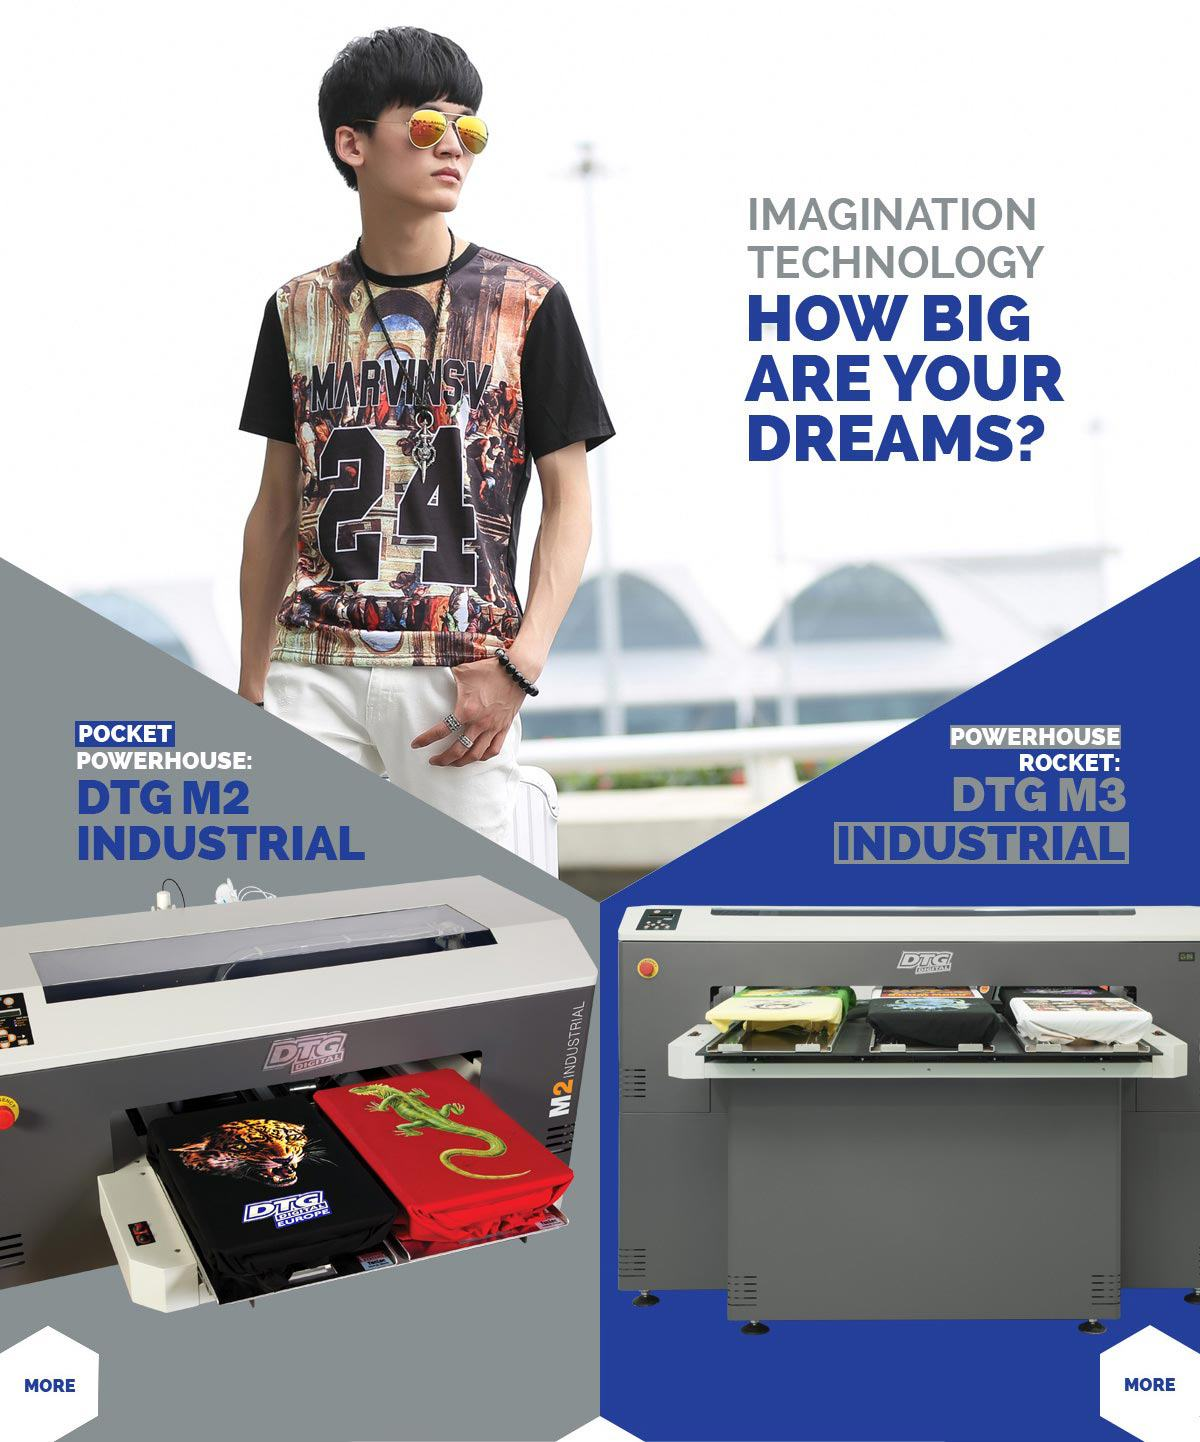 Imagination Technology - How Big Are Your Dreams?